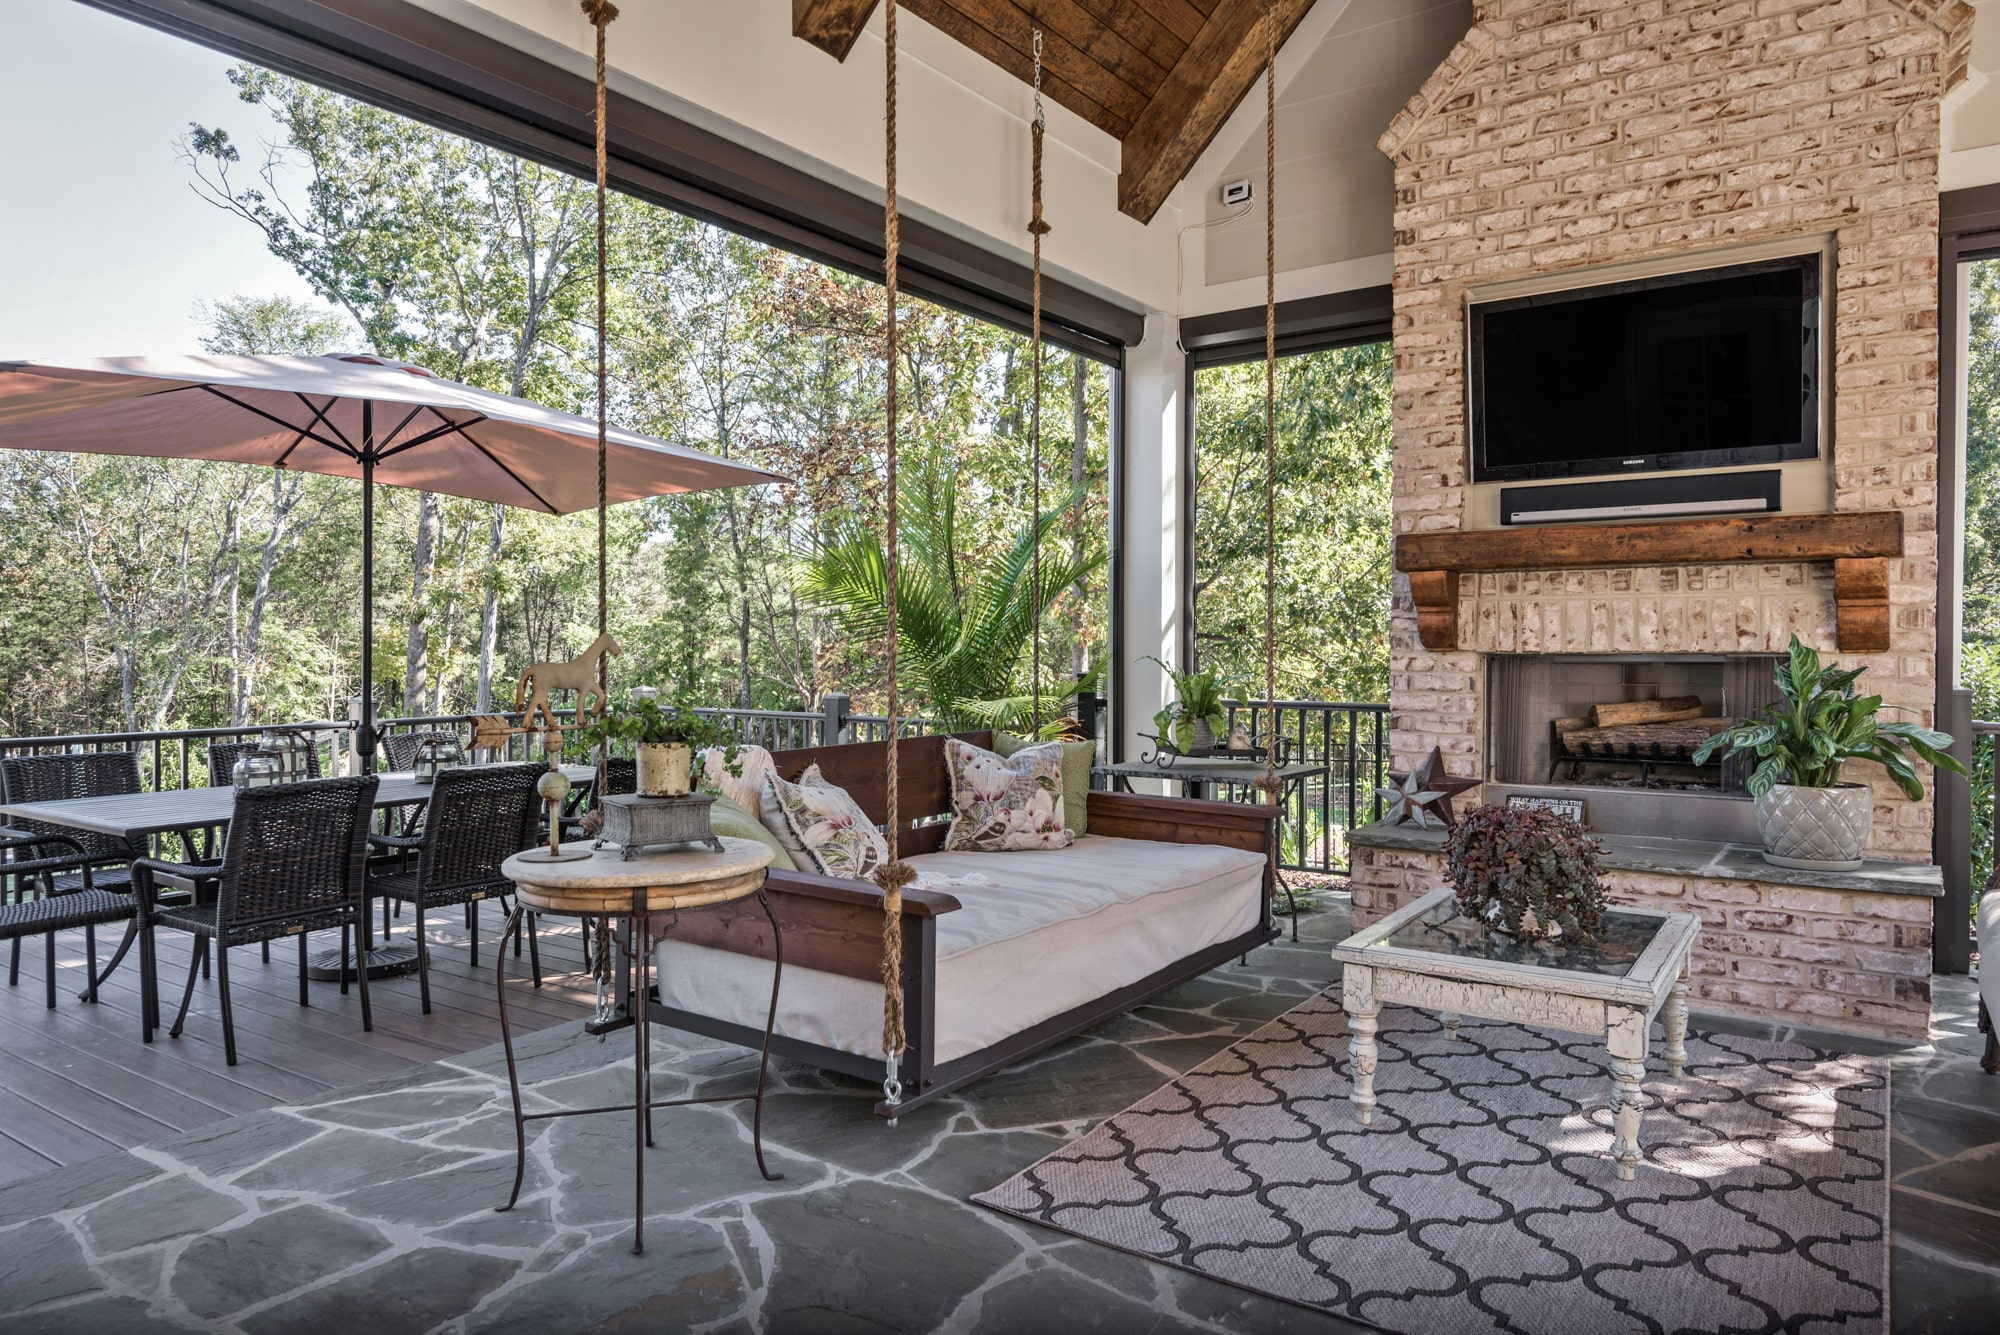 This screen porch is a thing of beauty.  The flagstone floor, brick fireplace, and rustic wood mantel give it a natural and relaxing feel.  The hanging beds provide a great place for a nap on a lazy day.